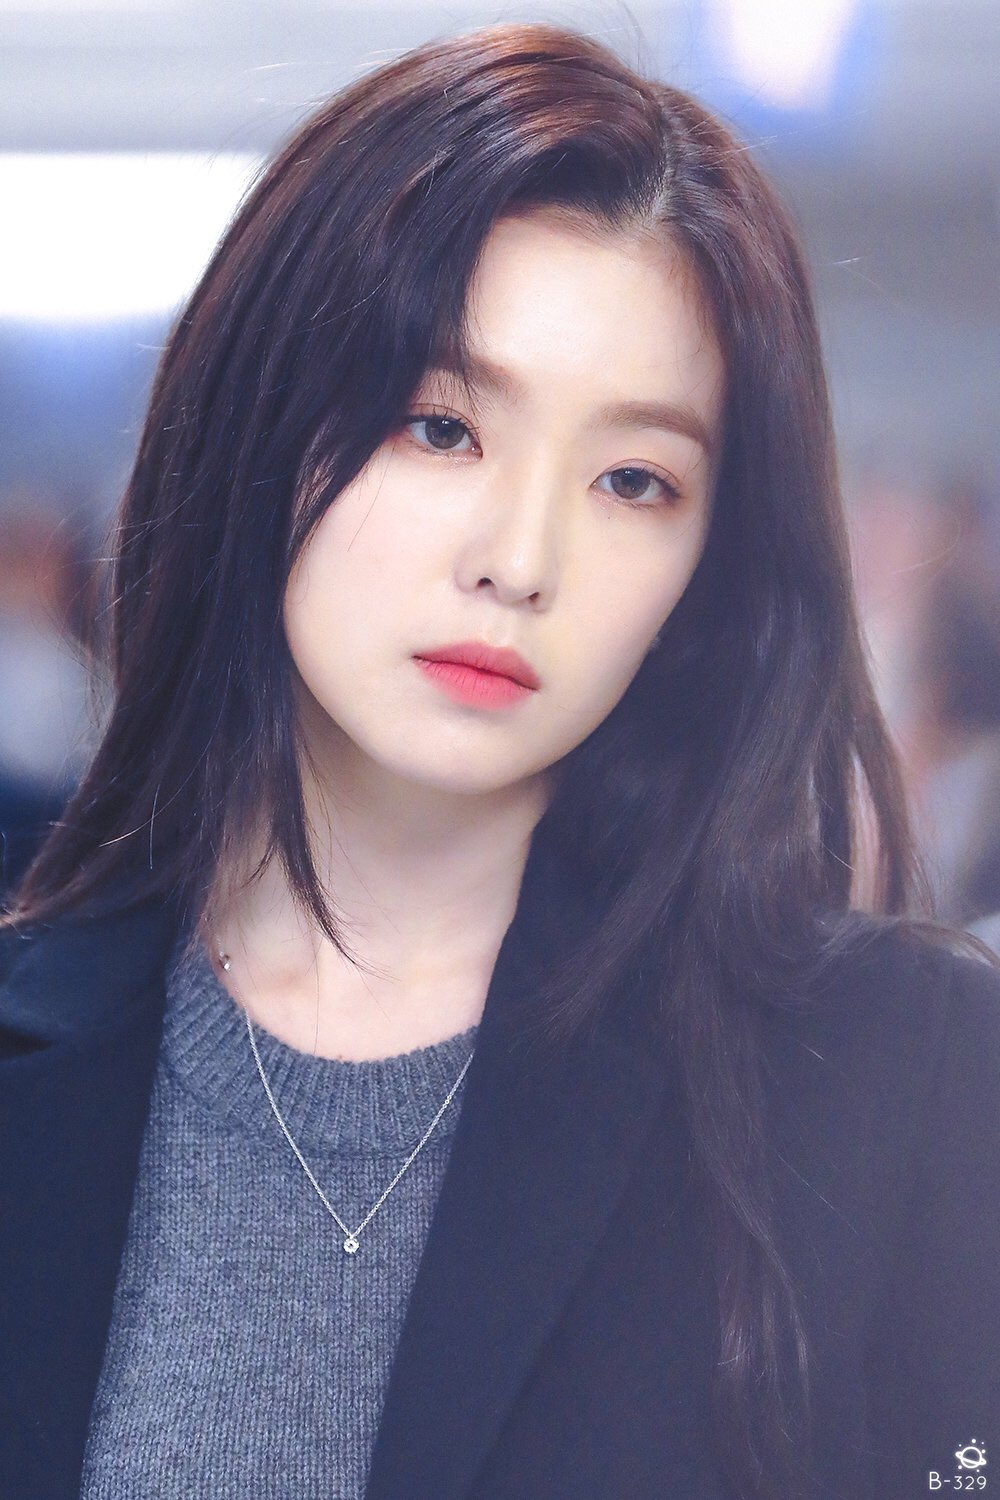 [Appreciation] Goddess Irene vs Asian Actresses | Who is